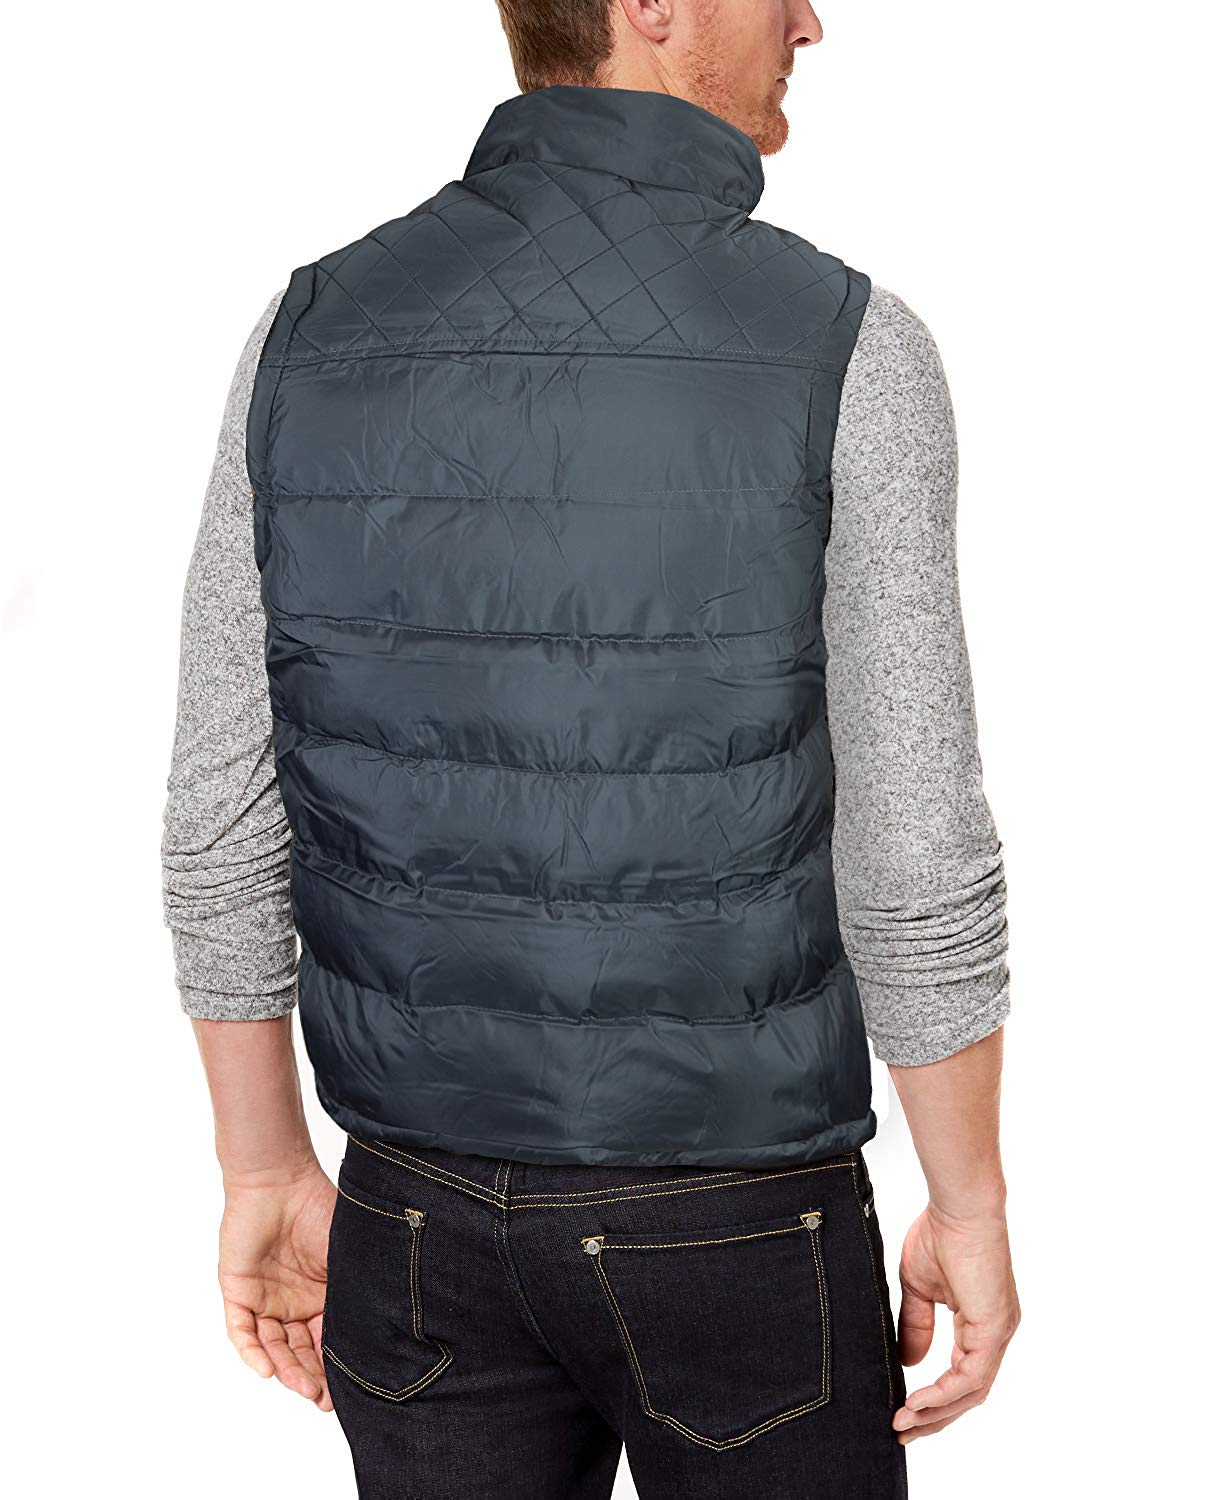 Bandoleros-Western-Men-039-s-Zip-Up-Athletic-Sport-Insulated-Puffer-Vest-VB thumbnail 6